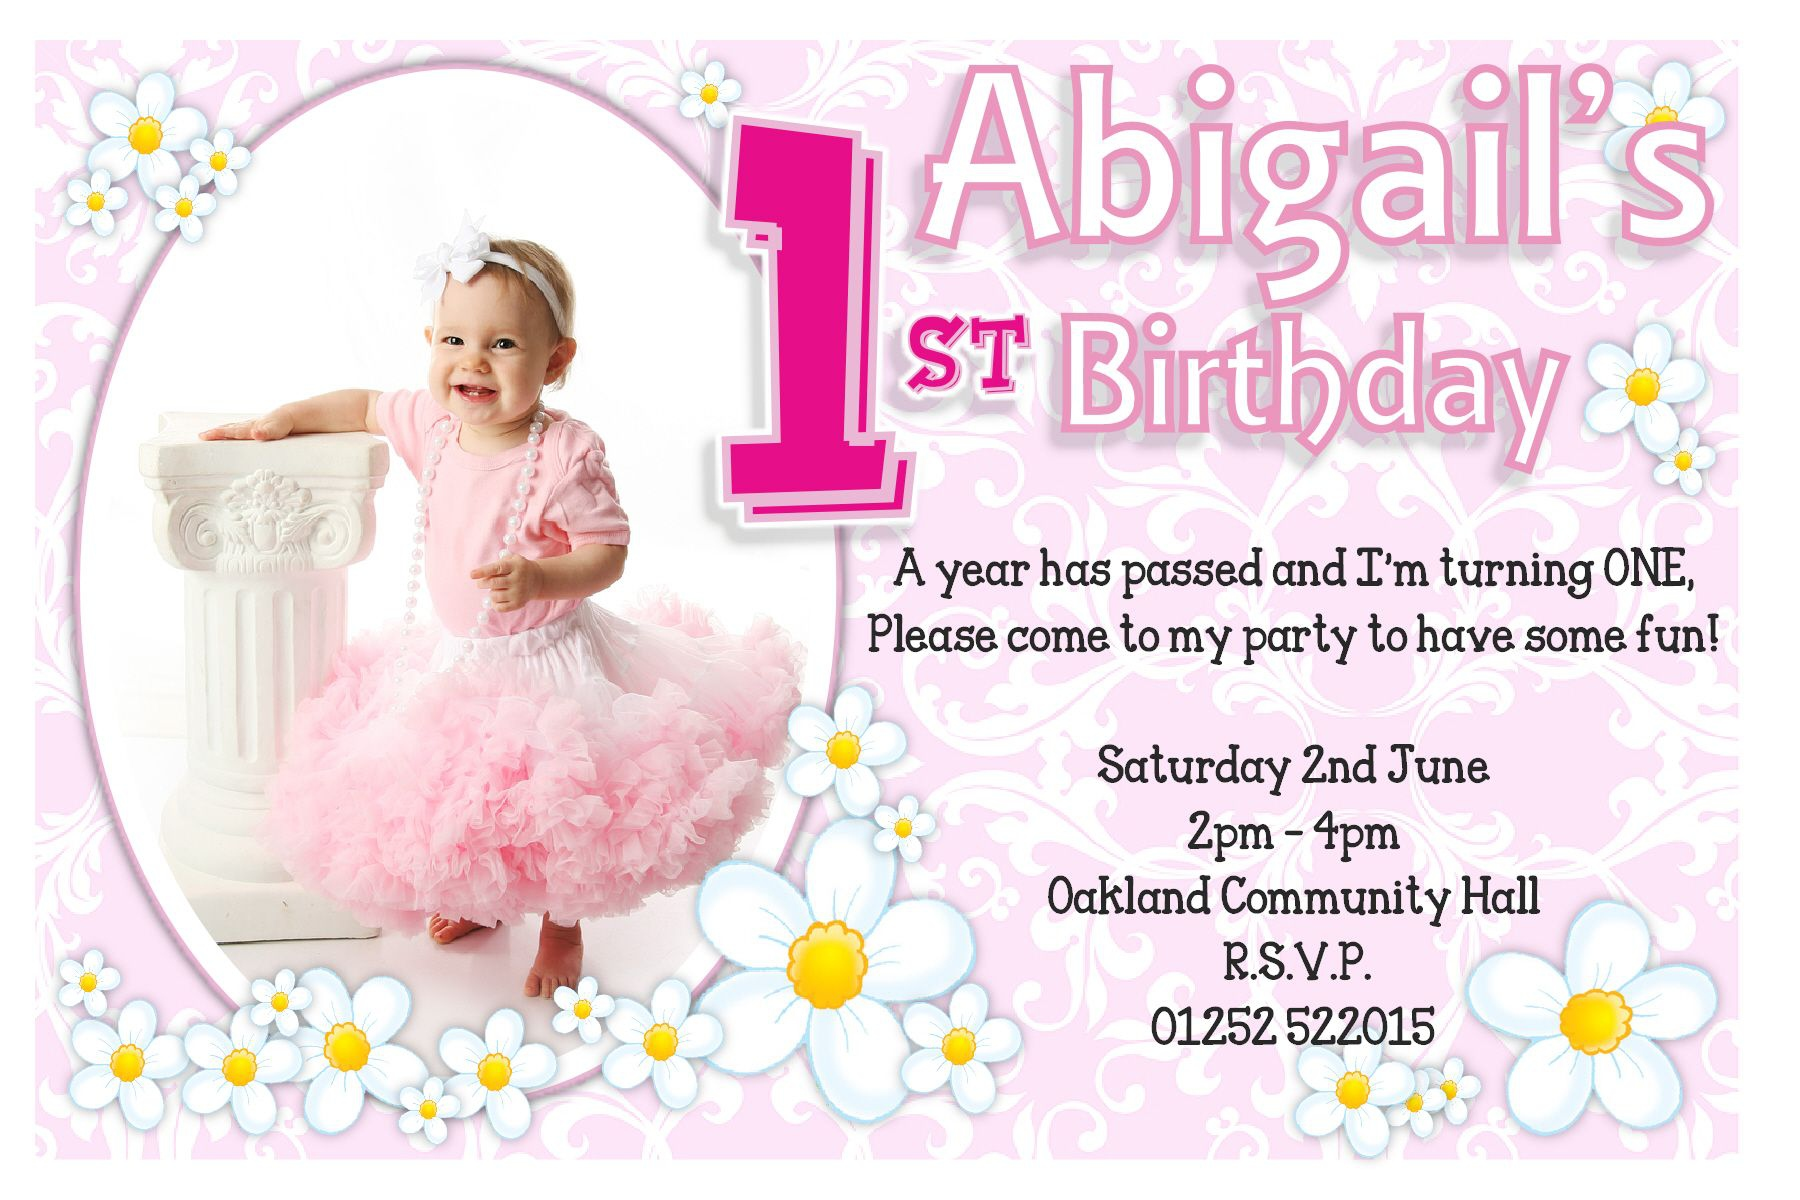 1 year old birthday invitation templates free ; 1St-Birthday-Invitation-Sample-for-a-chic-birthday-Invitation-design-with-chic-layout-7